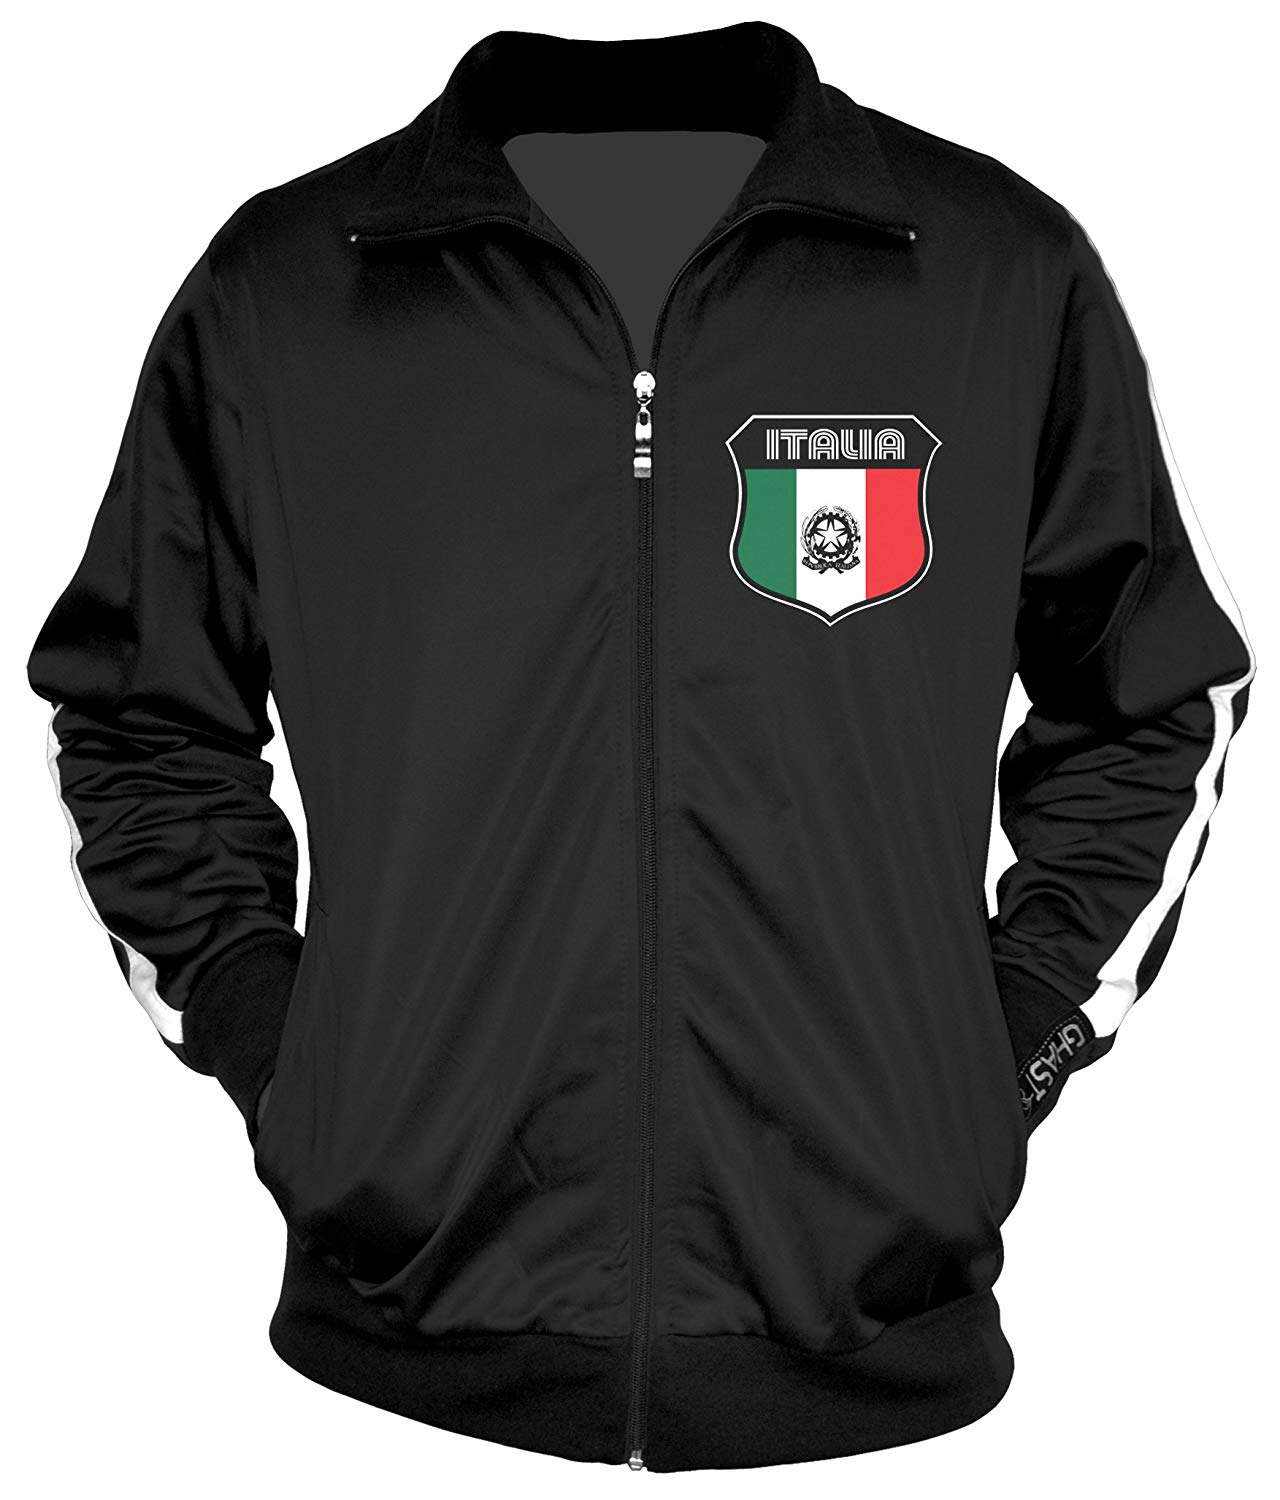 9272f013 Cheap Italia Track Jacket, find Italia Track Jacket deals on line at ...